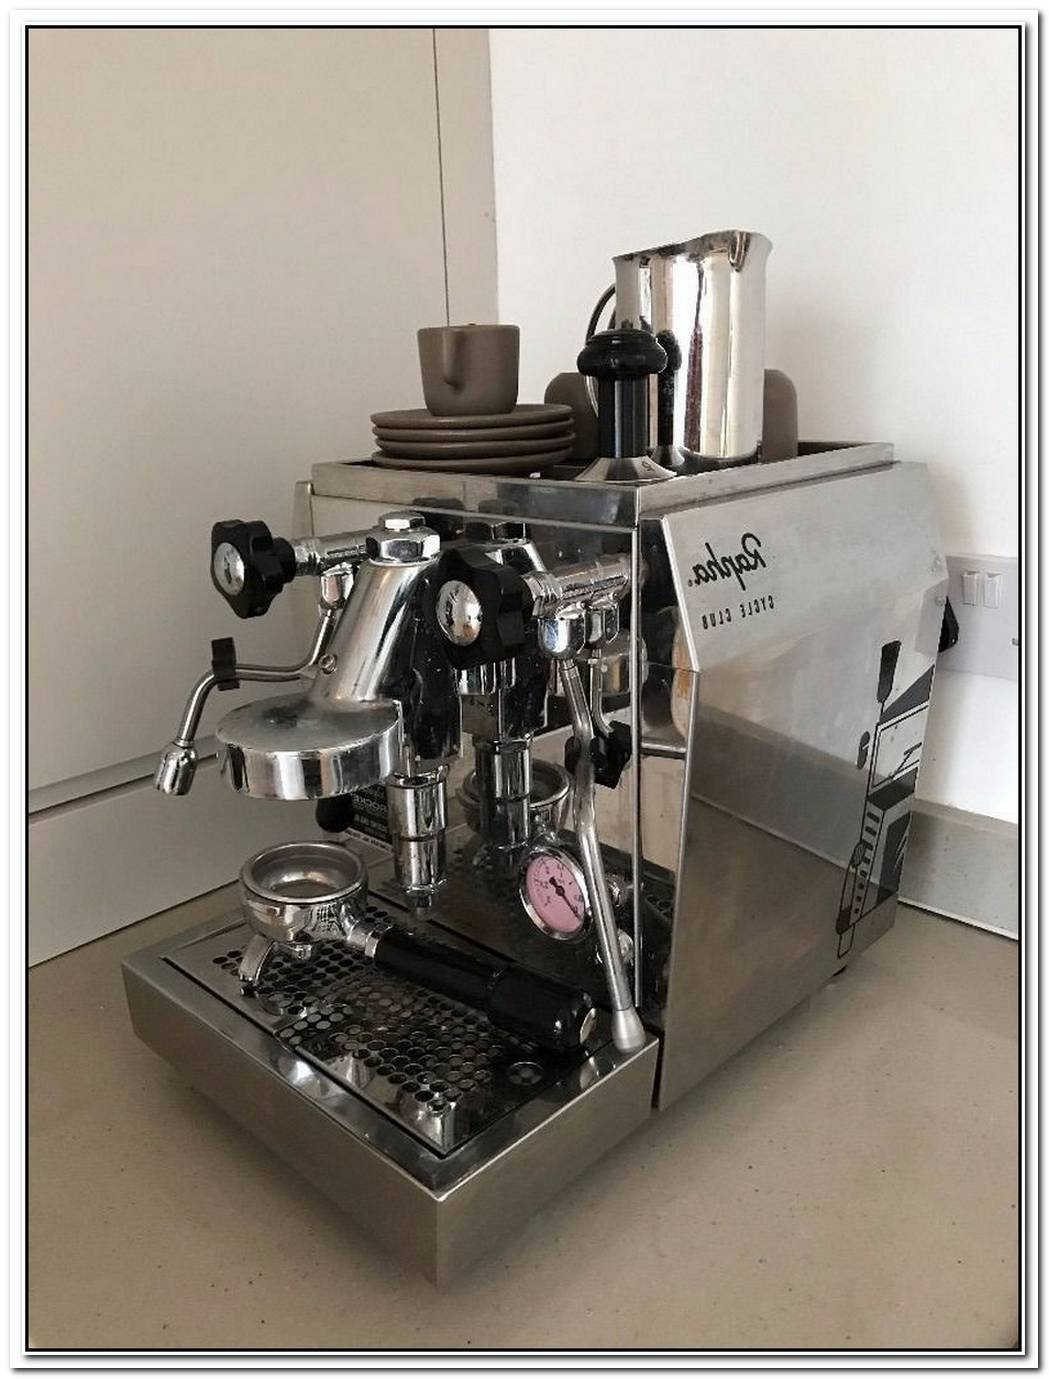 Rocket Giotto Rapha Espresso Machine